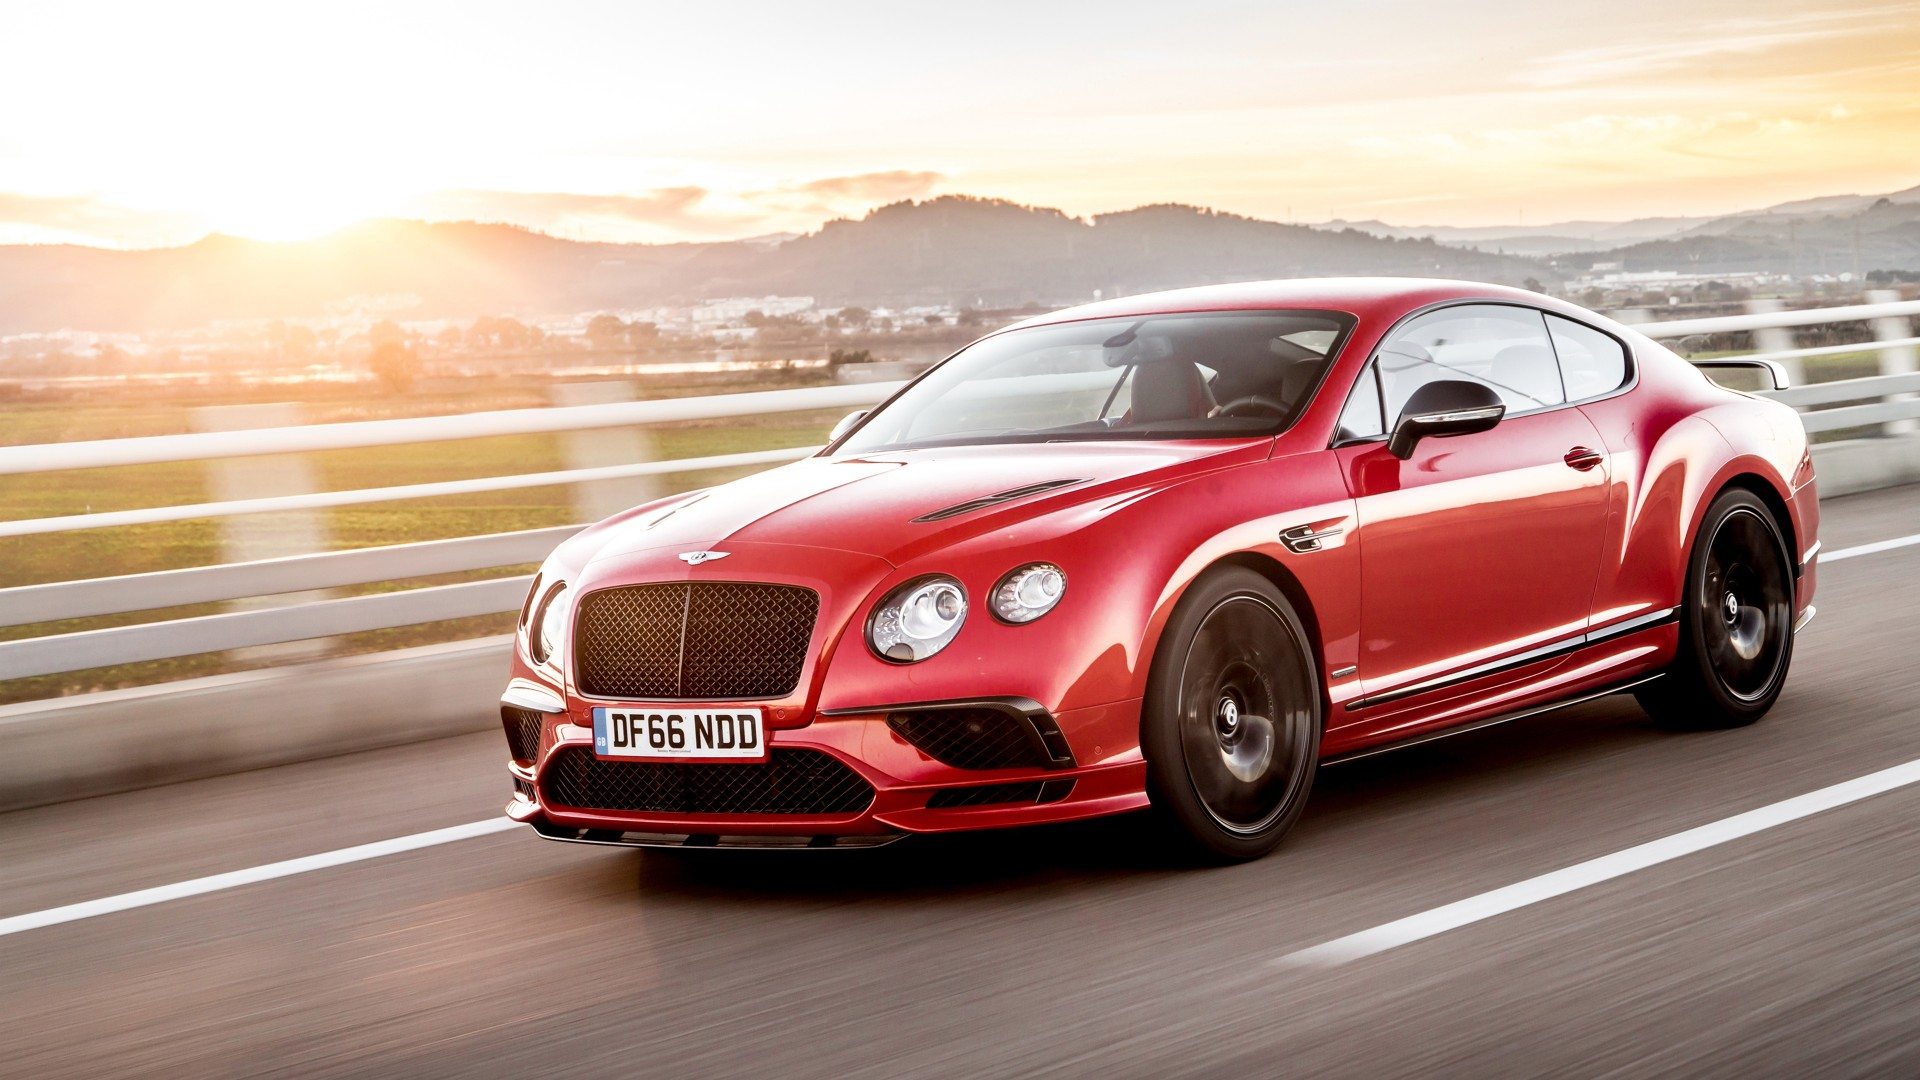 Luxury Cars Wallpapers For Desktop Bentley Continental Supersports 2017 4k Wallpapers Hd